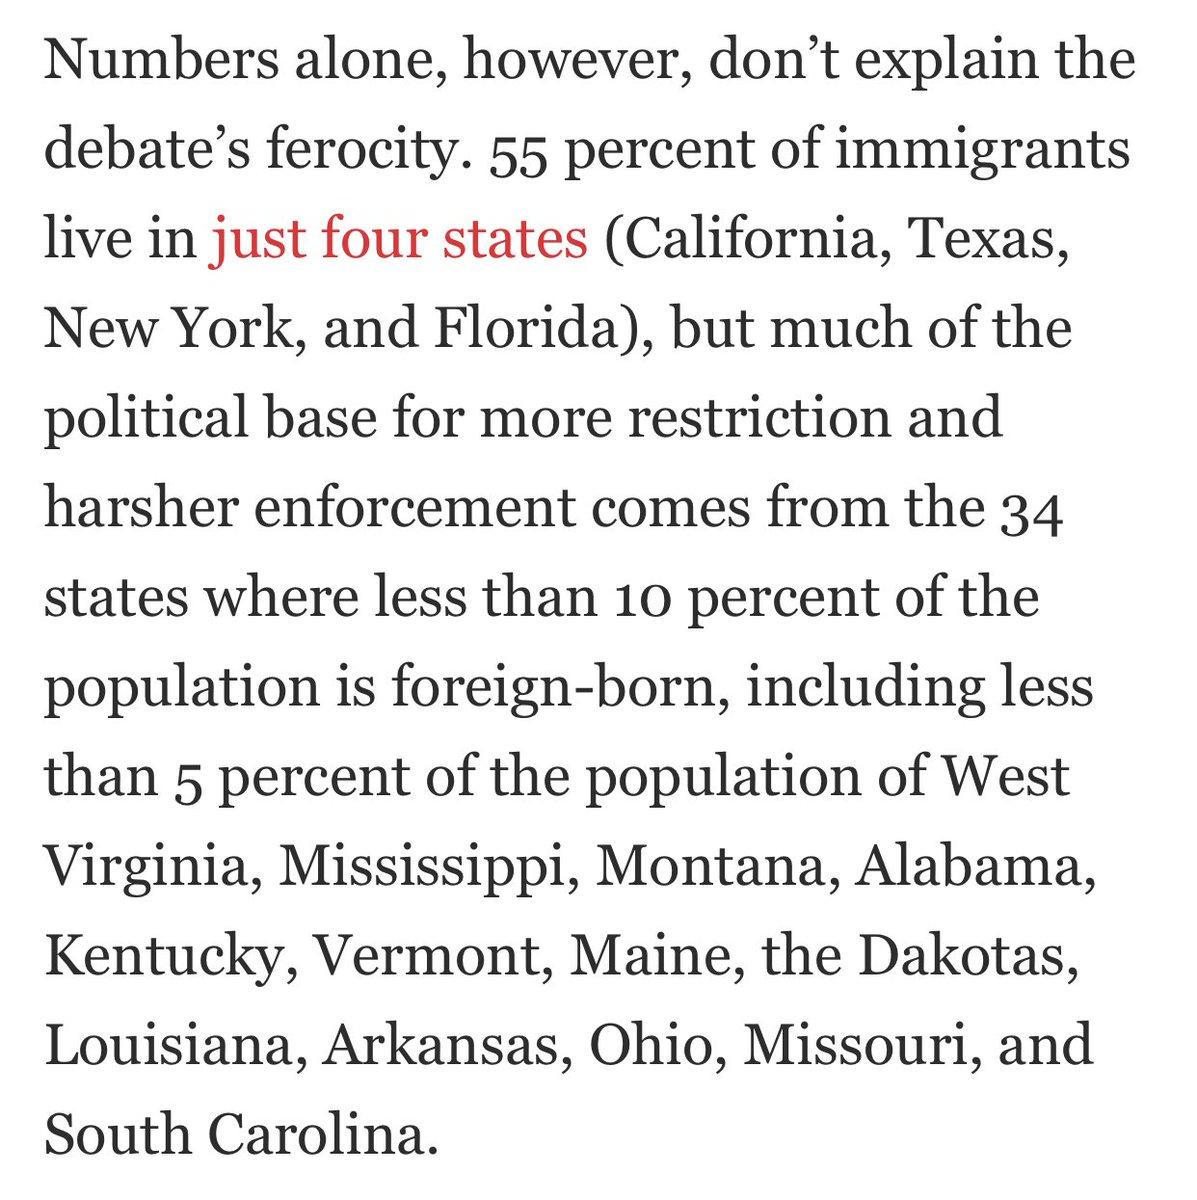 This is the most important graf in a great piece of writing from @baseballcrank   https://www.nationalreview.com/2019/01/immigration-why-we-panic-birth-rates-assimilation/…